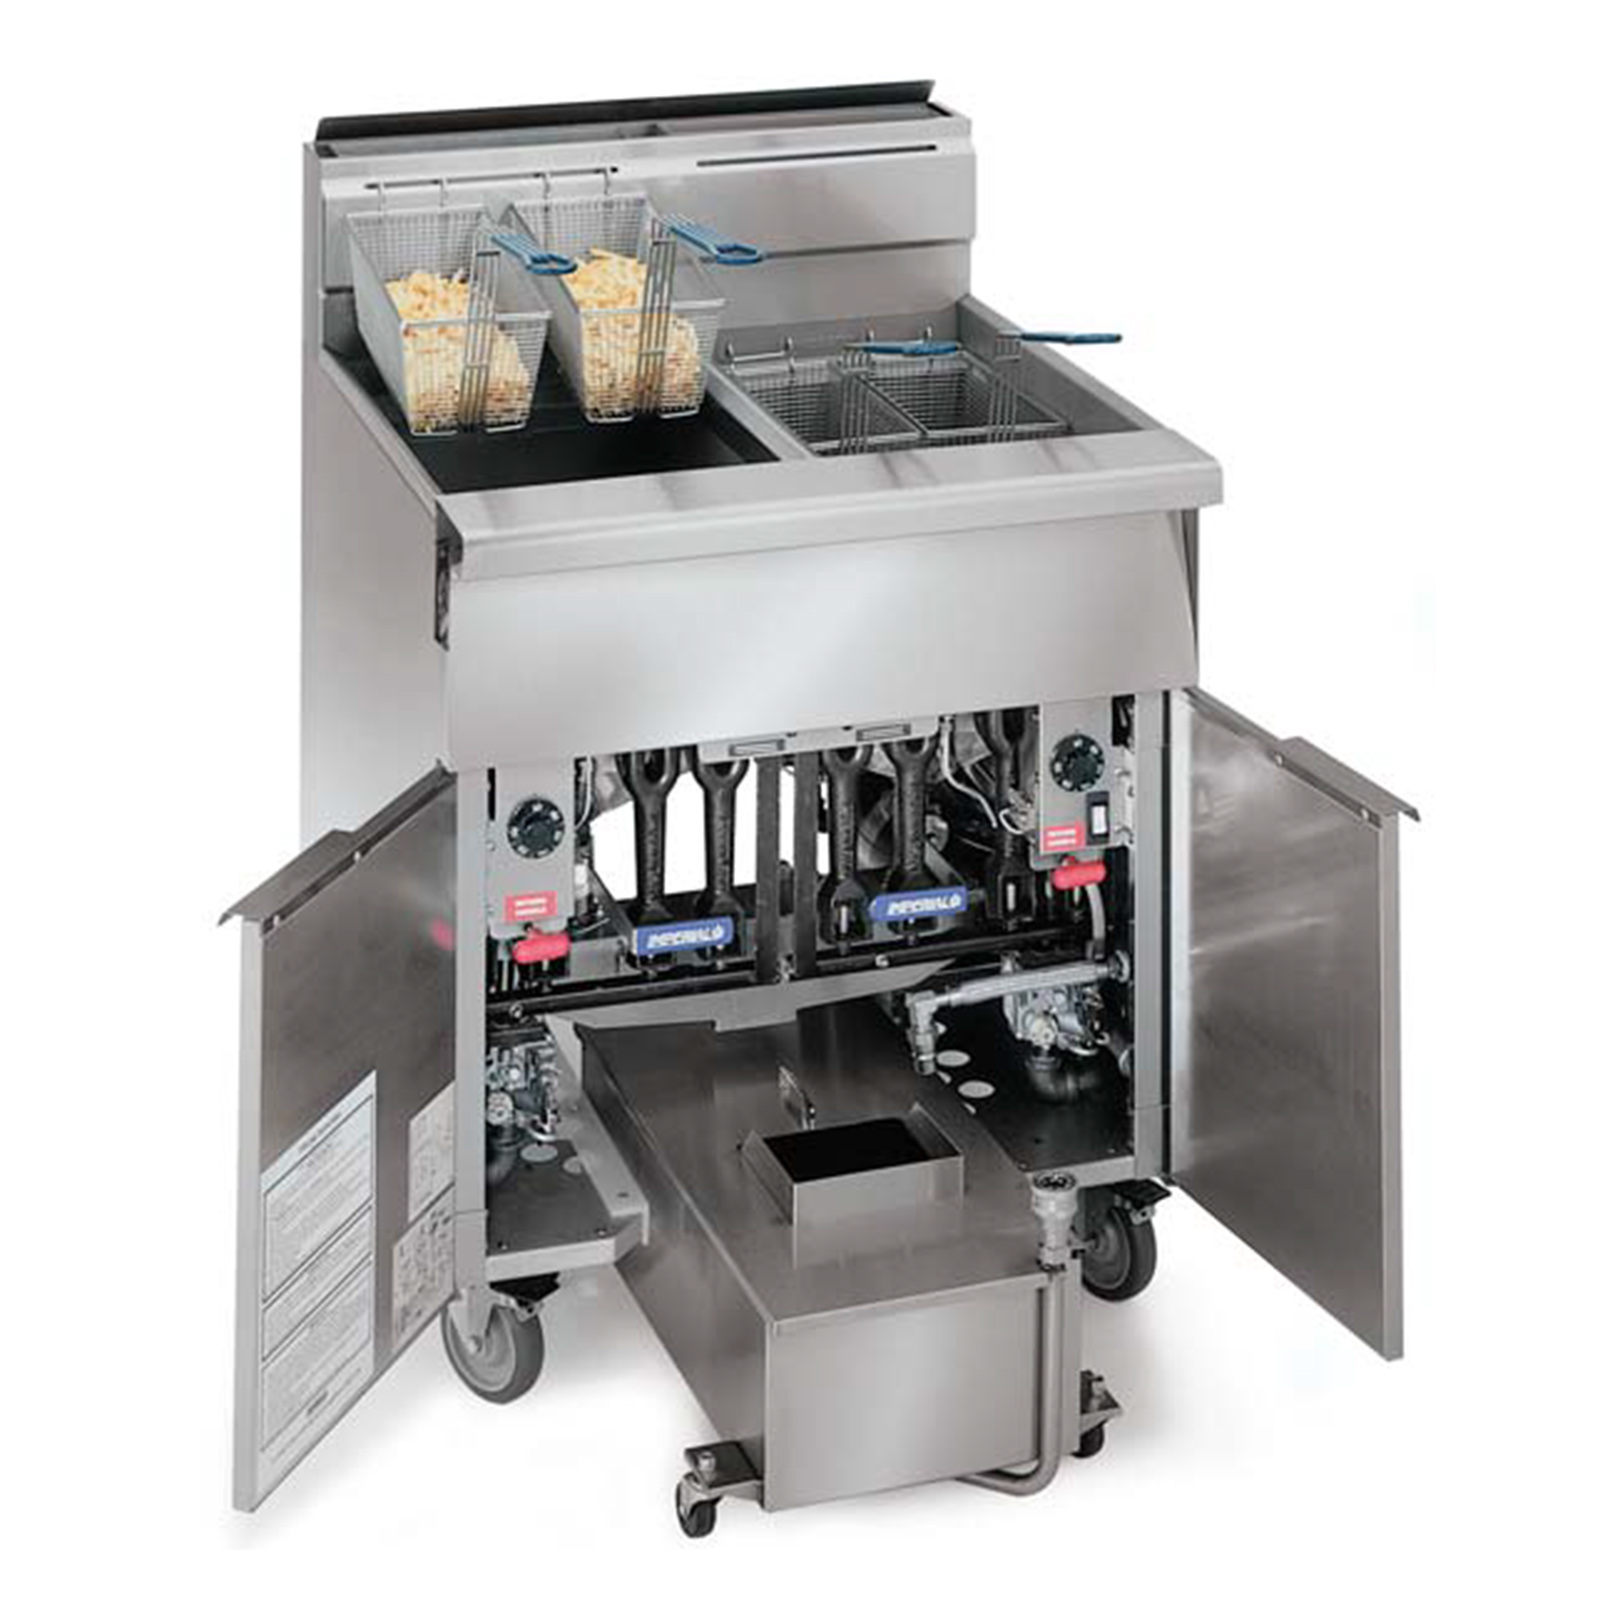 Imperial IHRSP350C fryer, gas, multiple battery